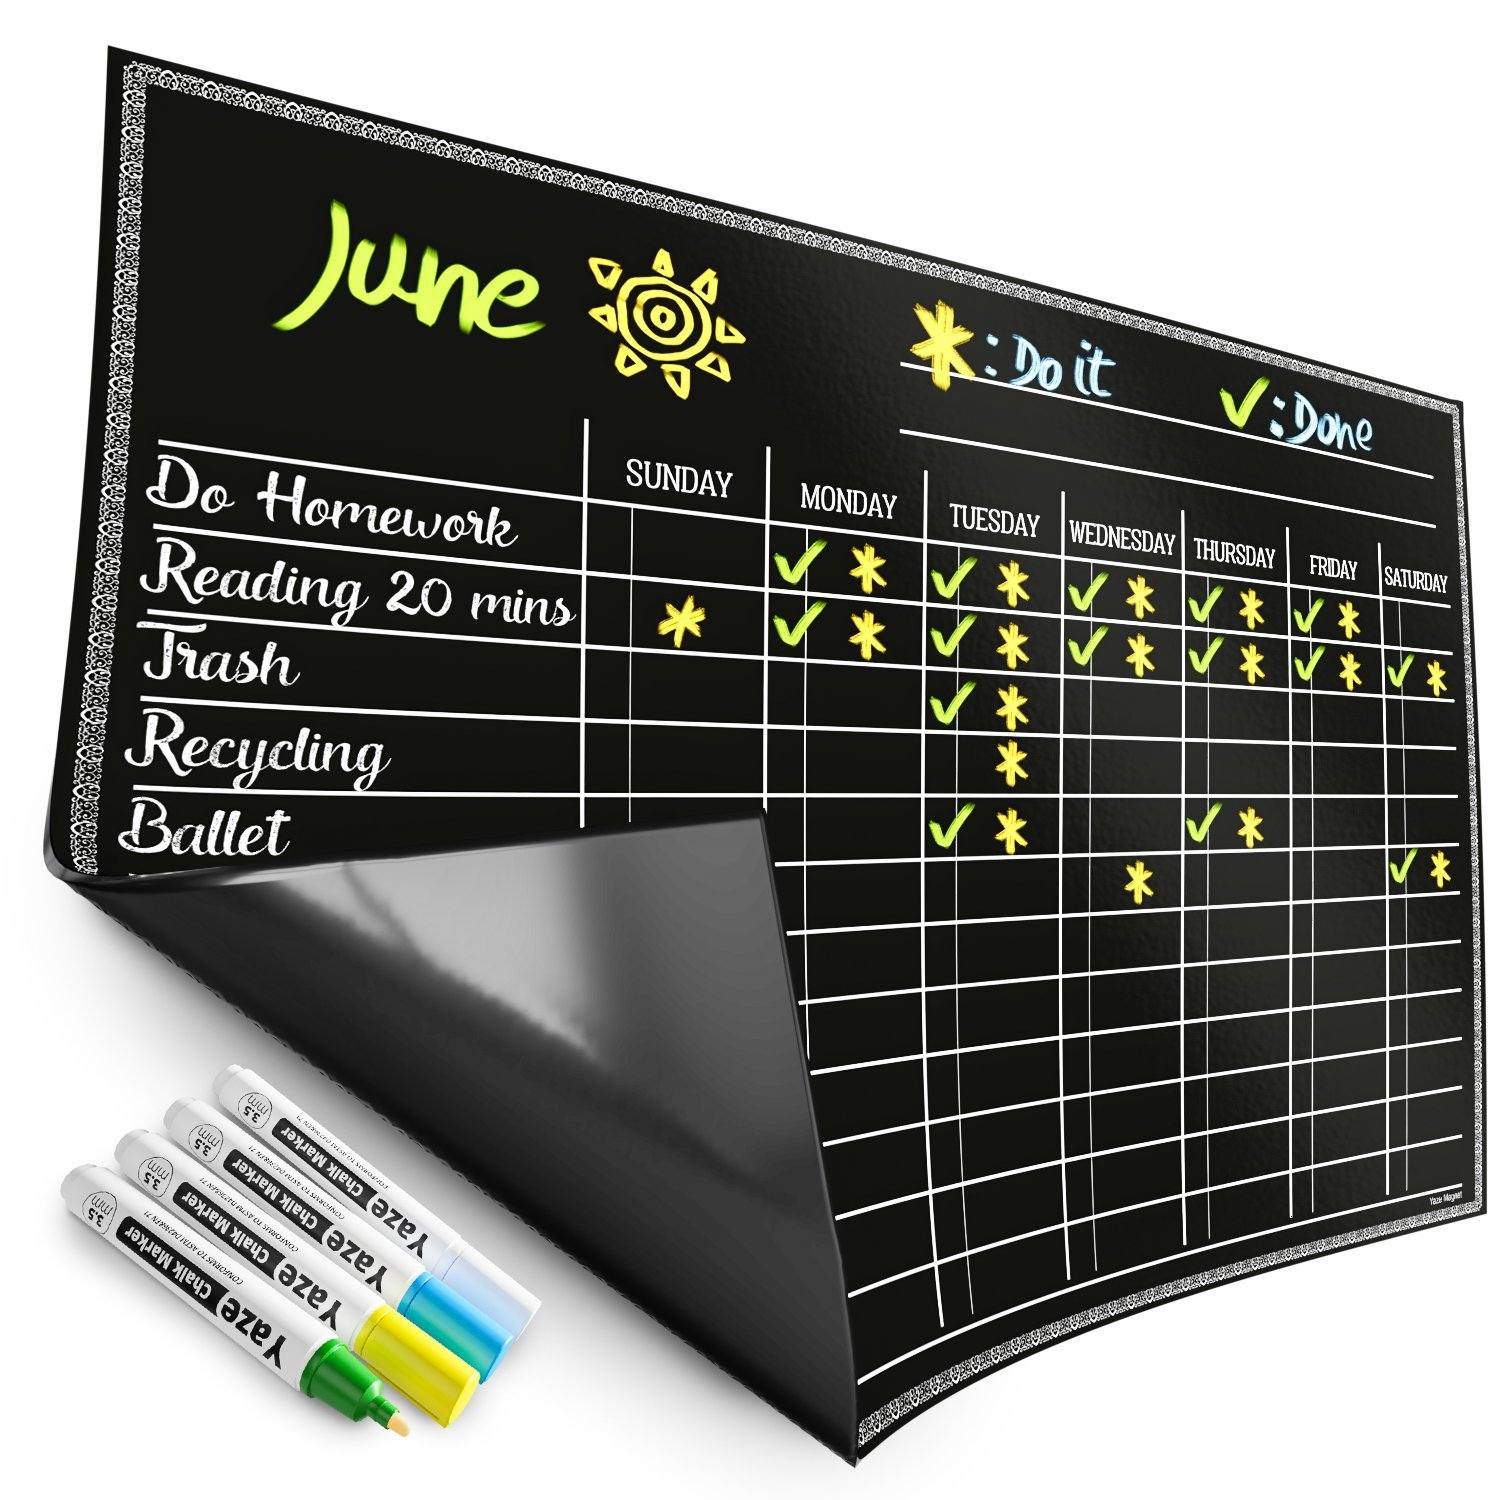 Magnetic Chore Chart for Kids - 4 Chalk Markers - Children's Dry Erase Chalkboard Calendar for Multiple Household Chores & Responsibilities - Easy-to-Clean Reusable Family Refrigerator Weekly Planner